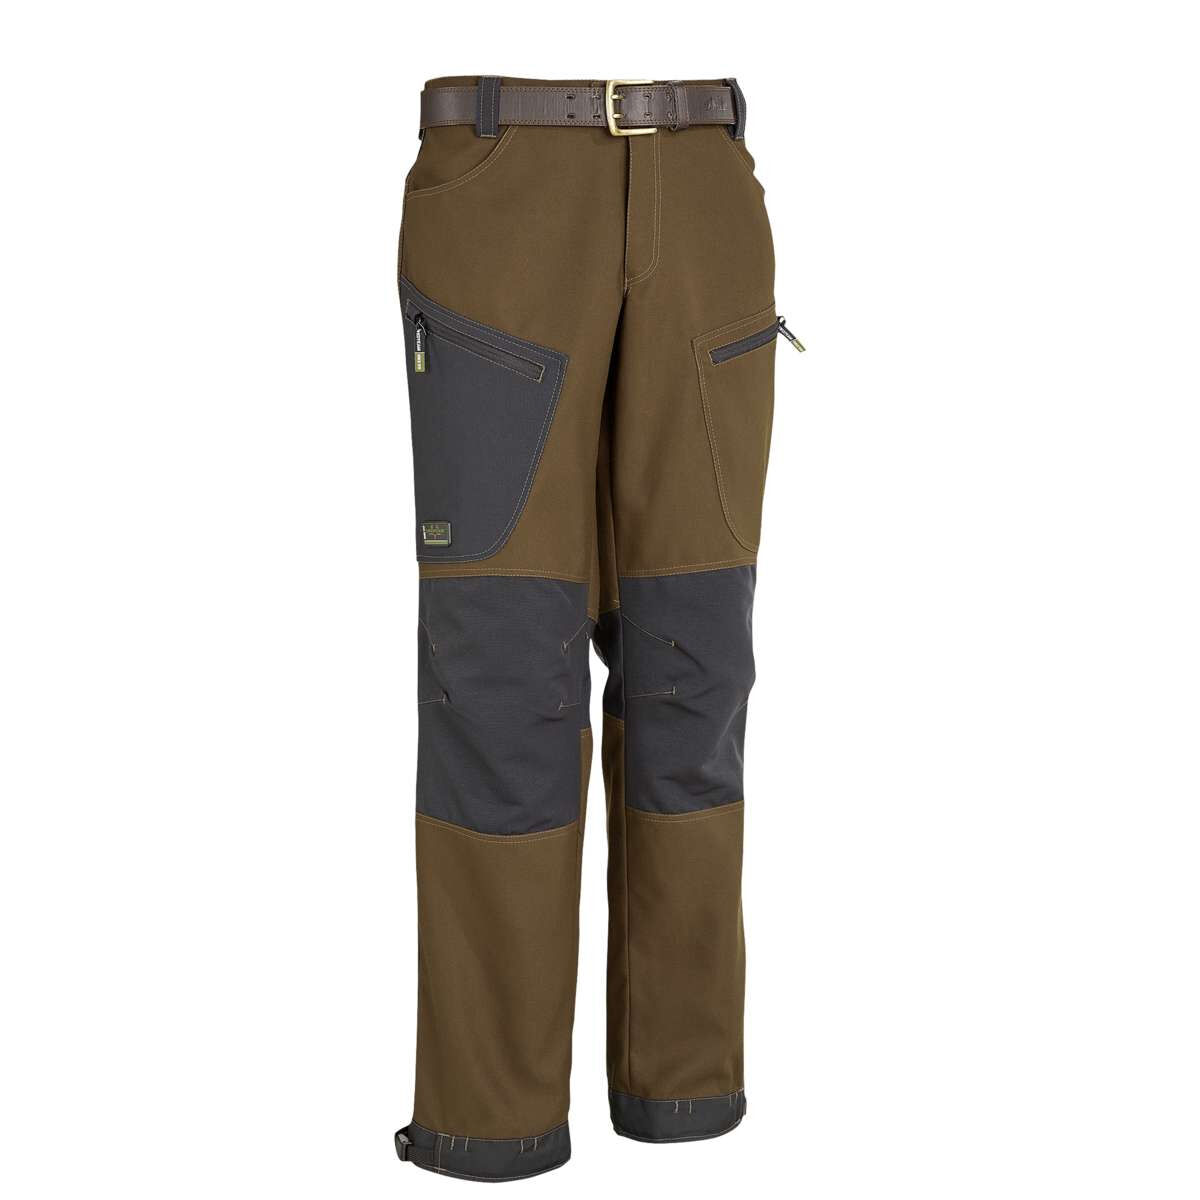 Swedteam Titan Pro Wilderness Shooting-Hunting Trousers